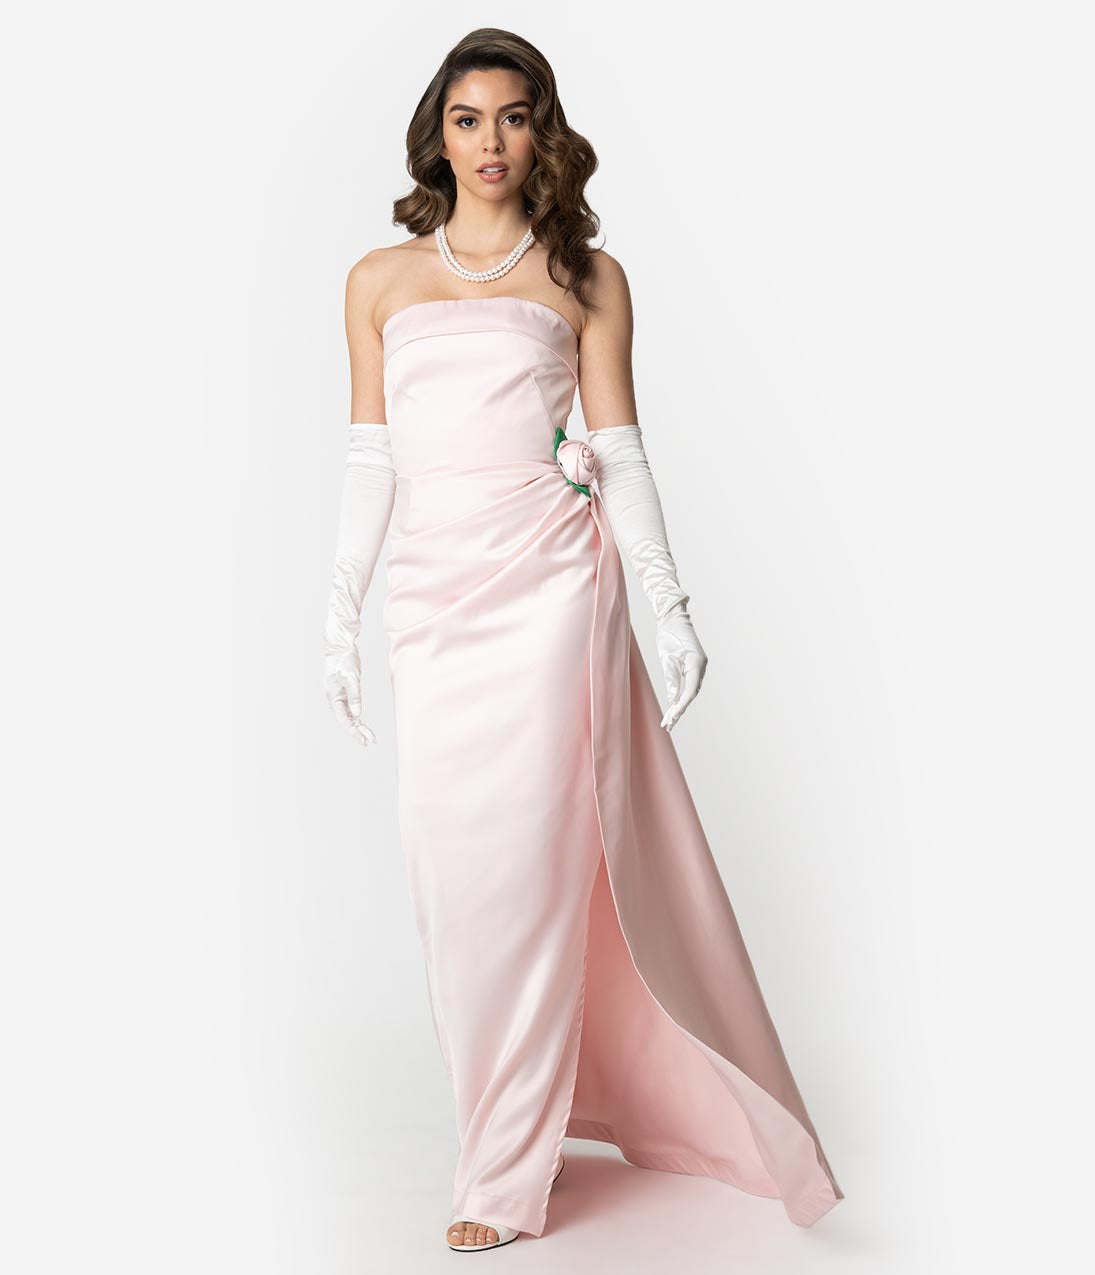 2930bed5b160d Barbie x Unique Vintage Pink Satin Strapless Enchanted Evening Gown